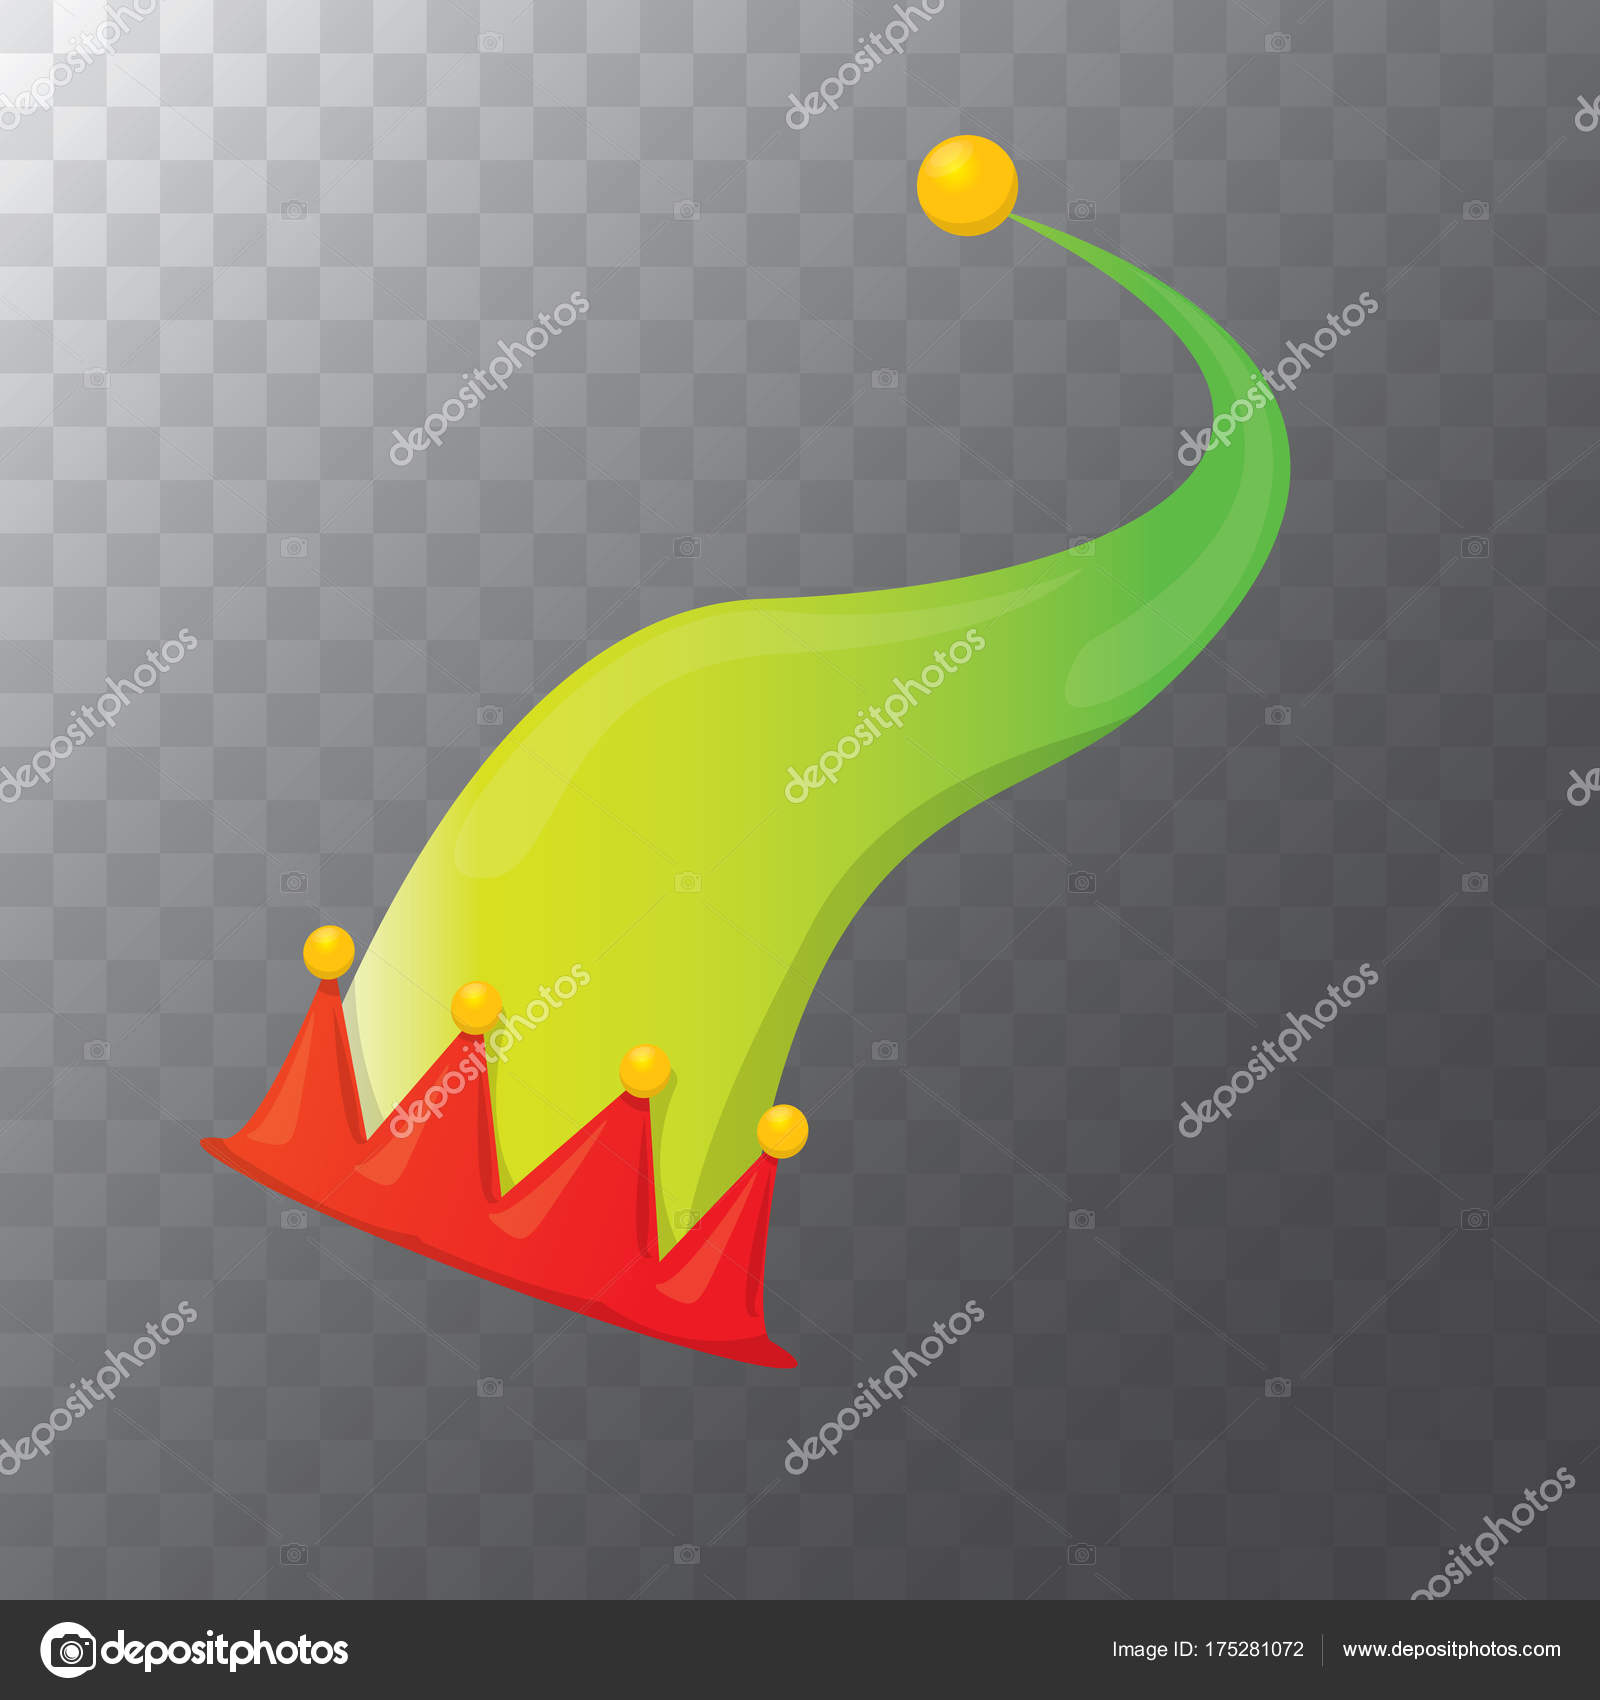 702bdaa9c7744 Vector funky red and green stripped cartoon christmas elf hat isolated on  transparent background. vector